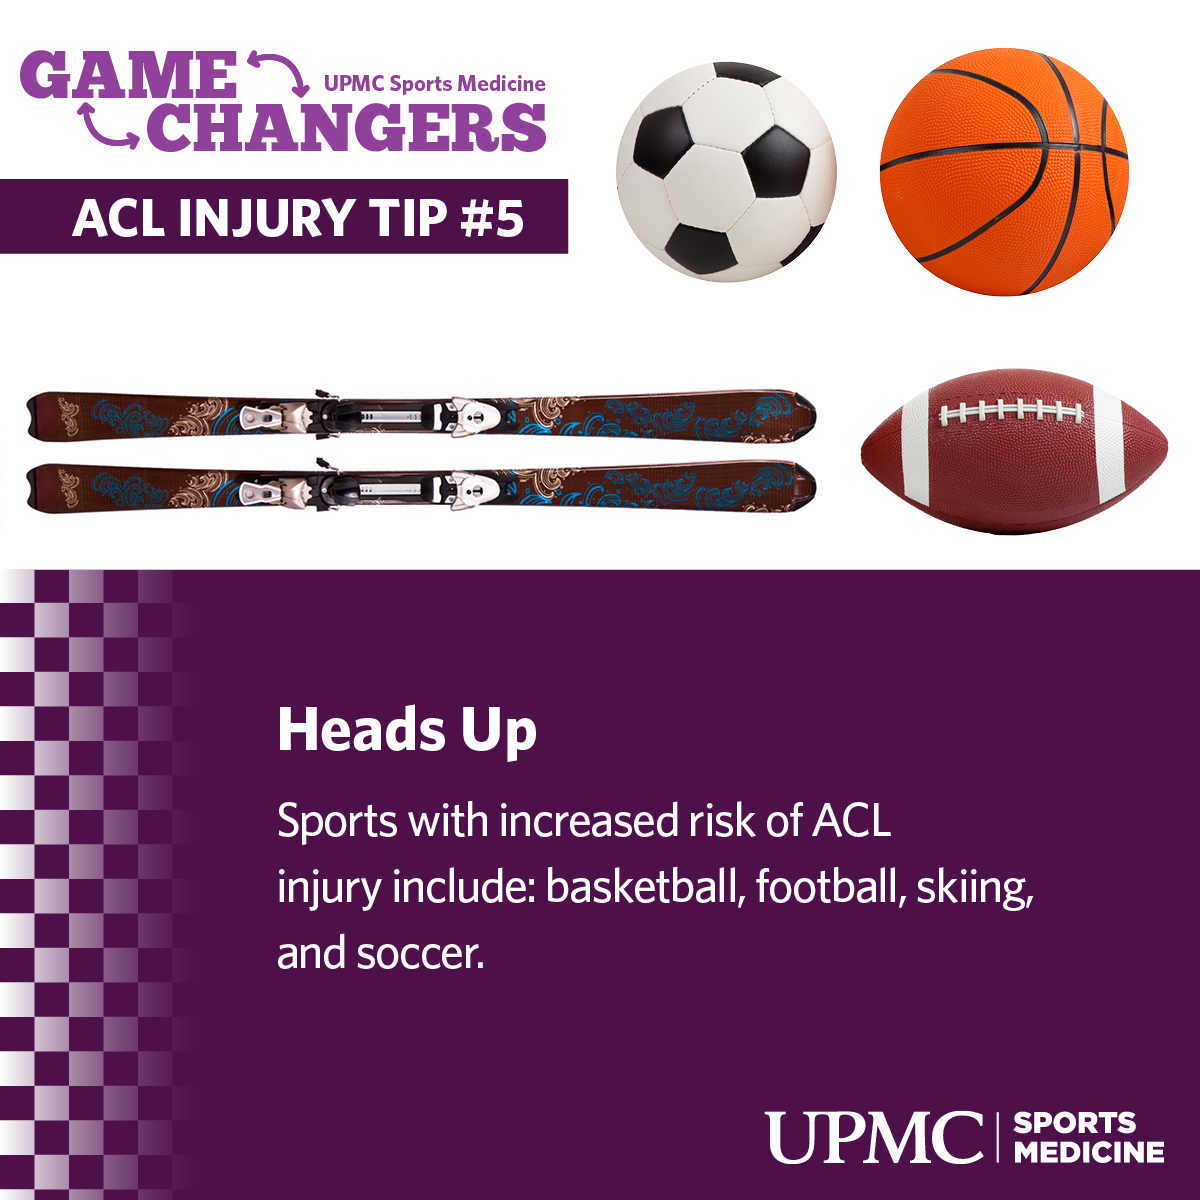 UPMC_GameChangers_ACL_FB5_FINAL